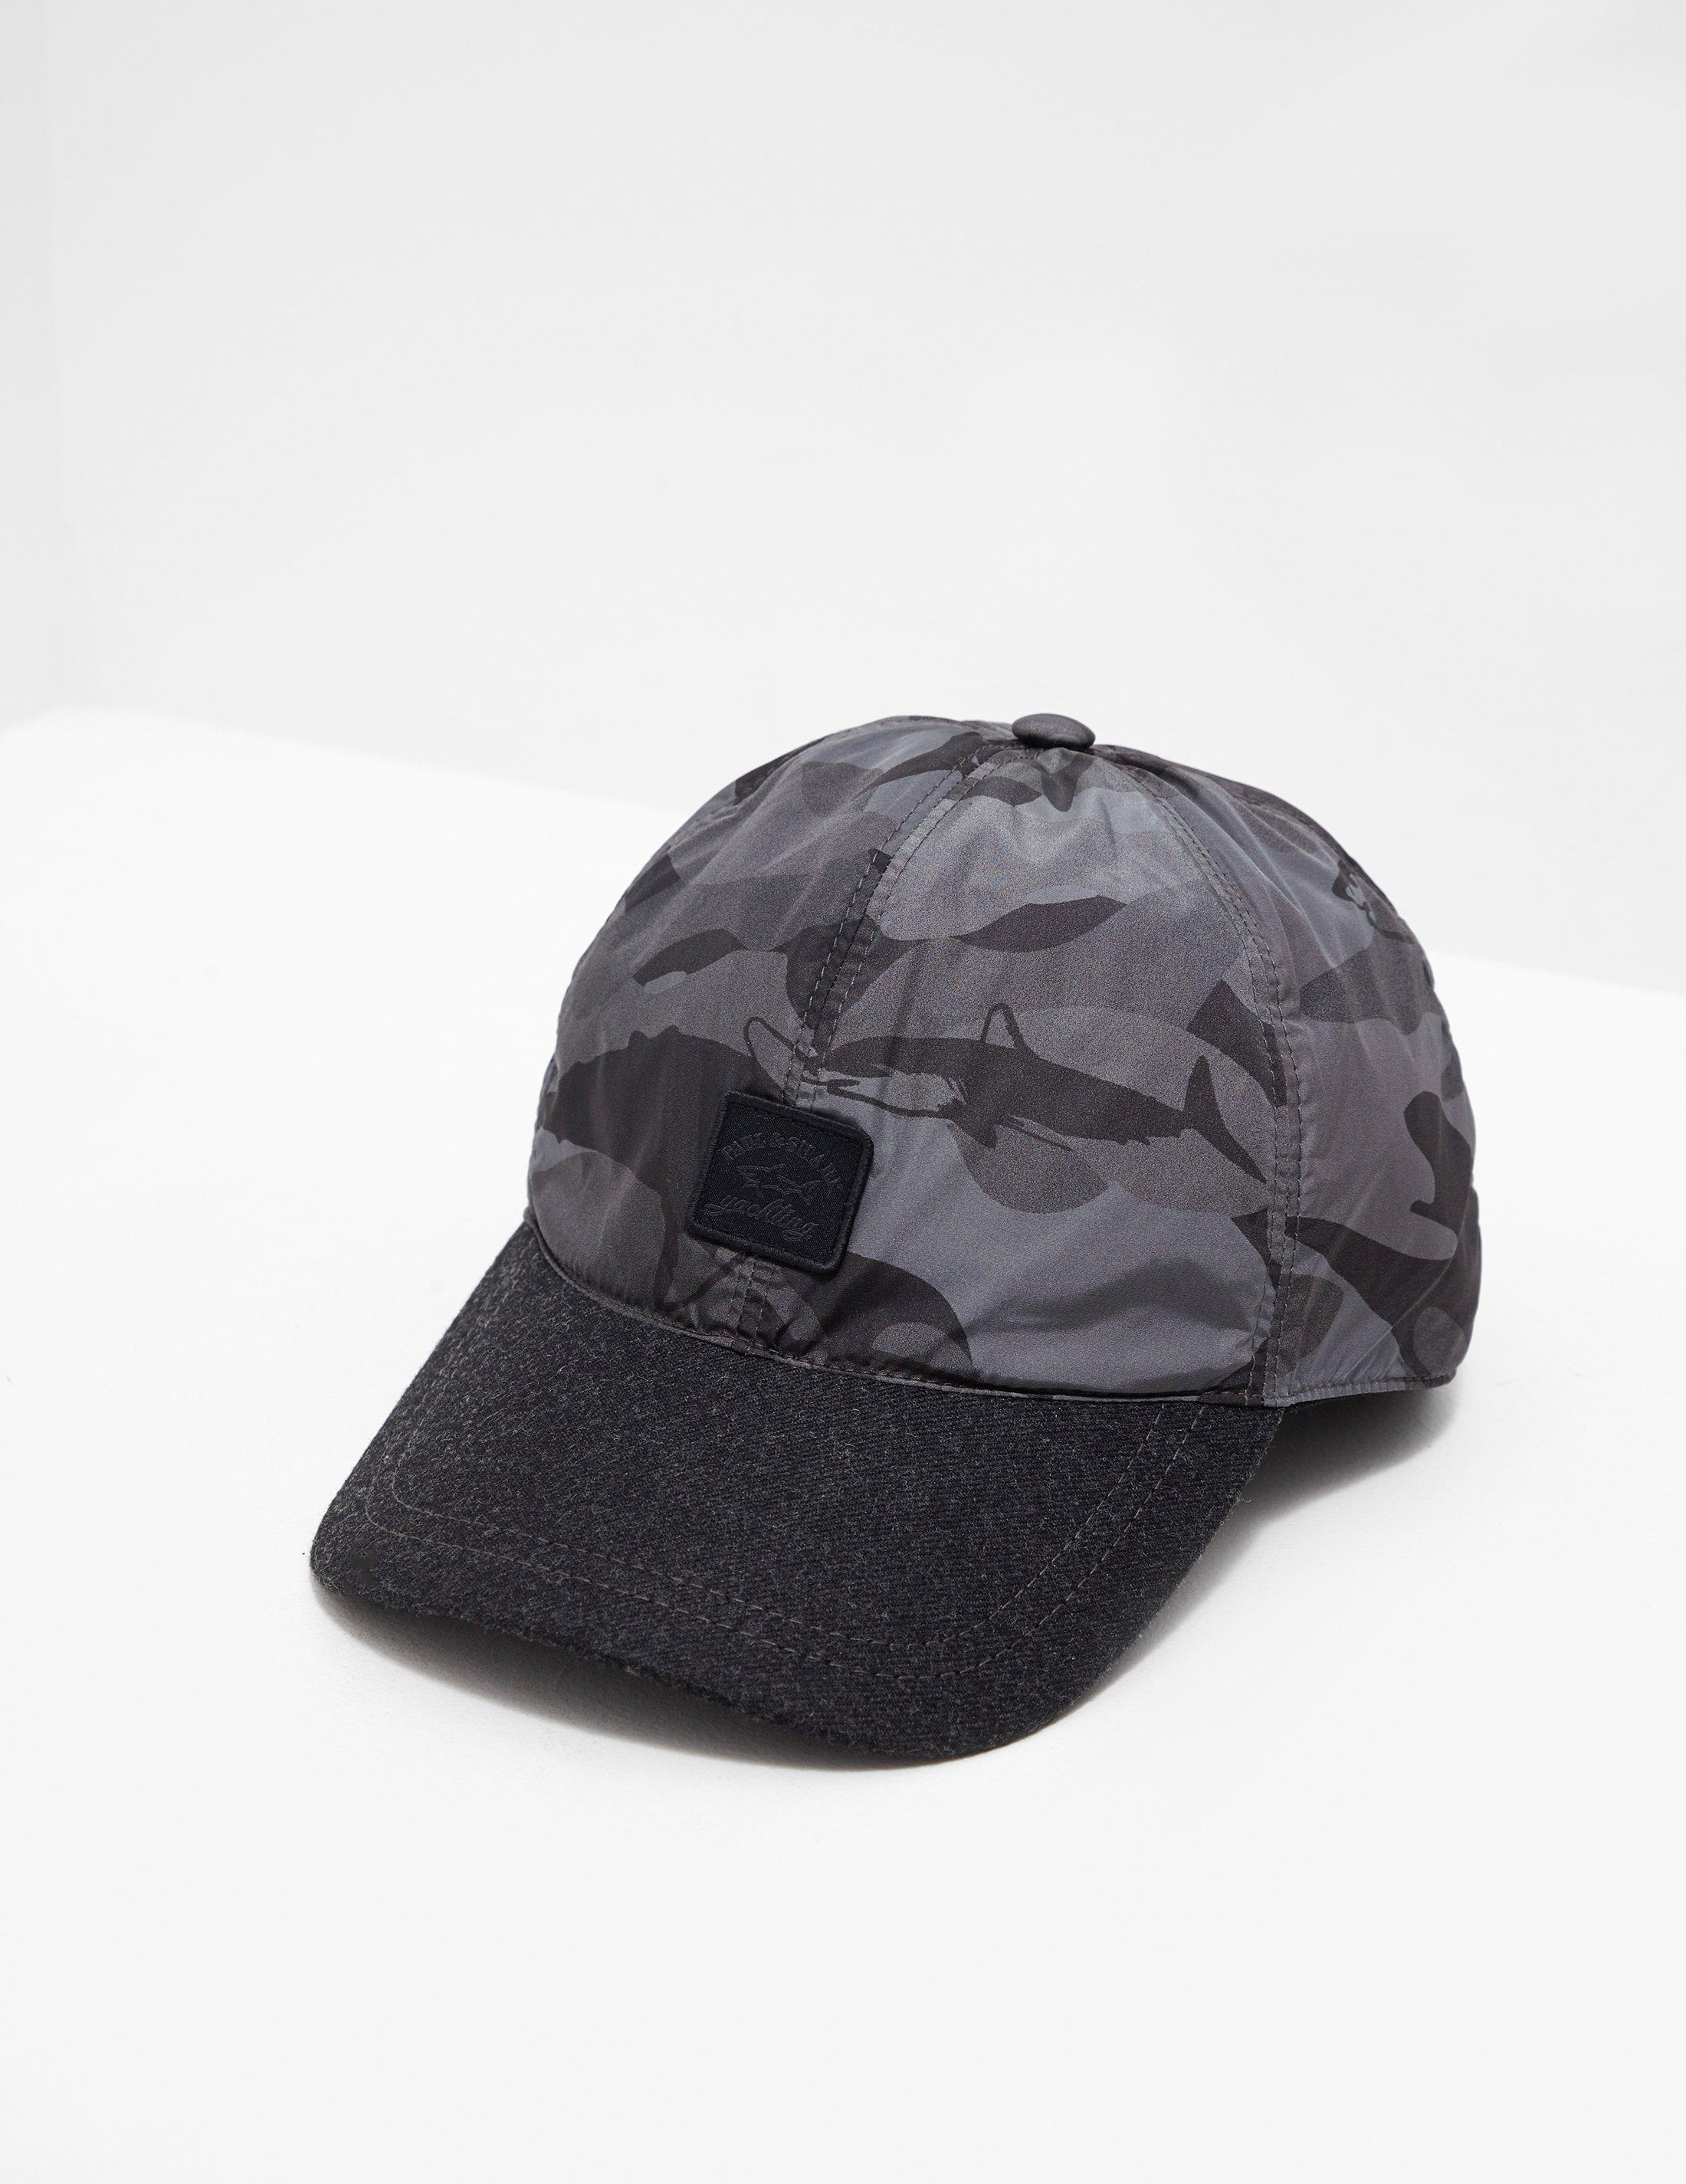 4d015d0cd83 Paul   Shark Mens Sharkflage Cap Black in Black for Men - Lyst